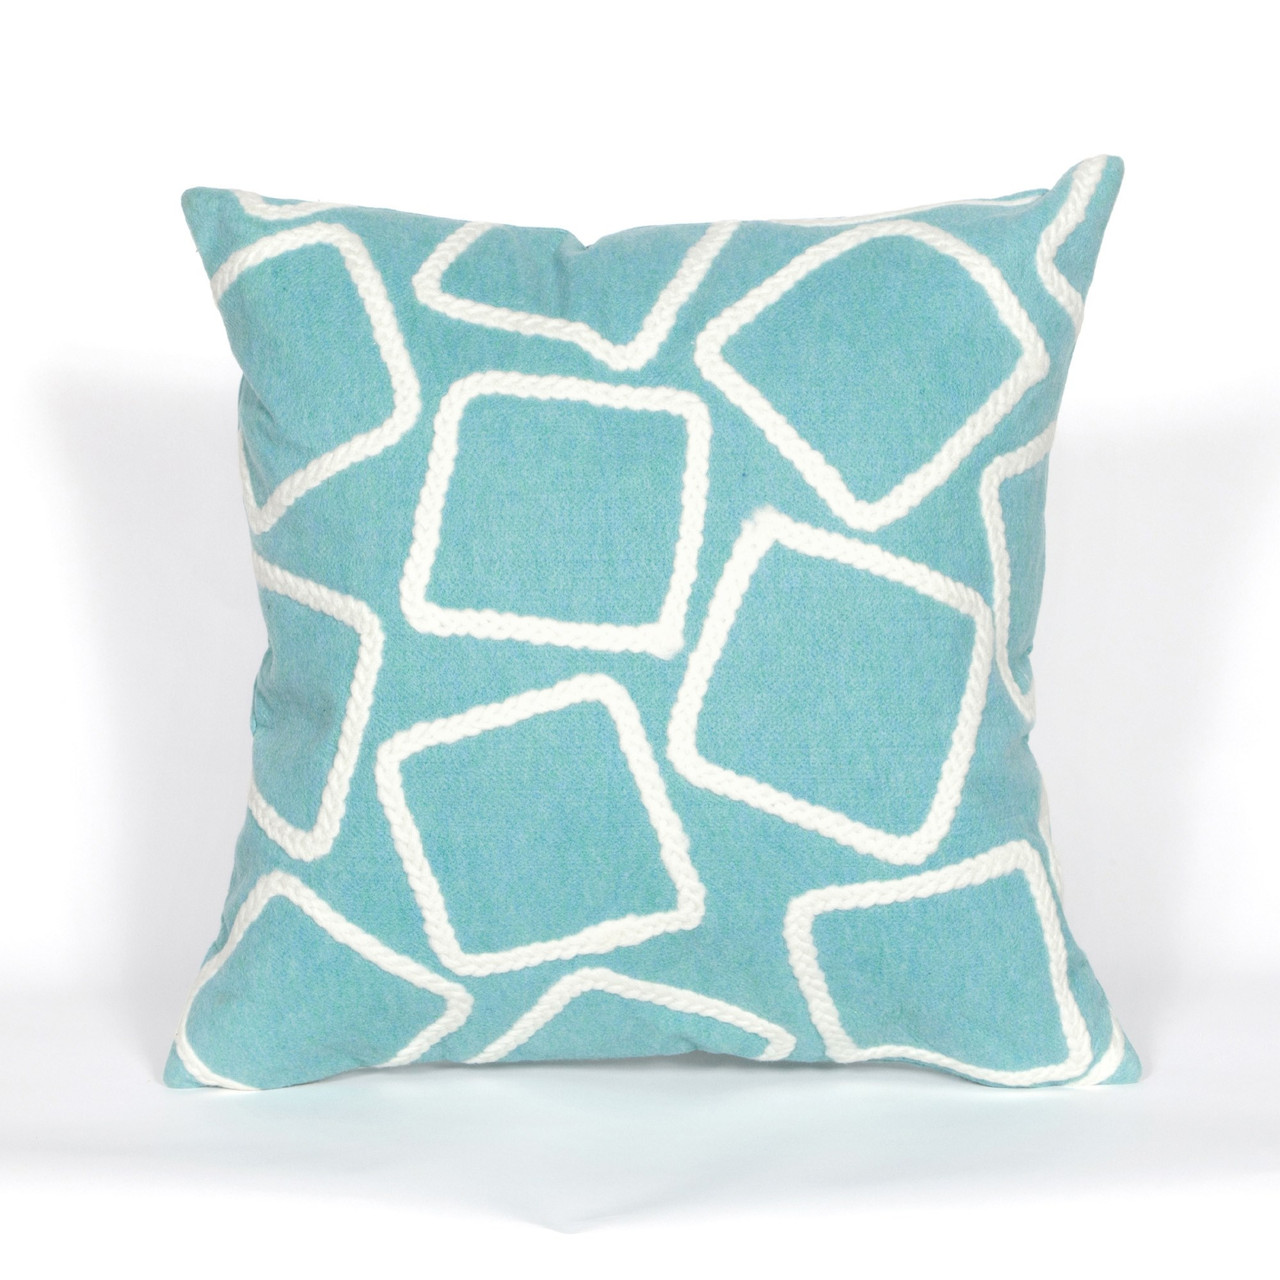 Visions Aqua Squares Indoor/Outdoor Throw Pillows - 2 Sizes Avail